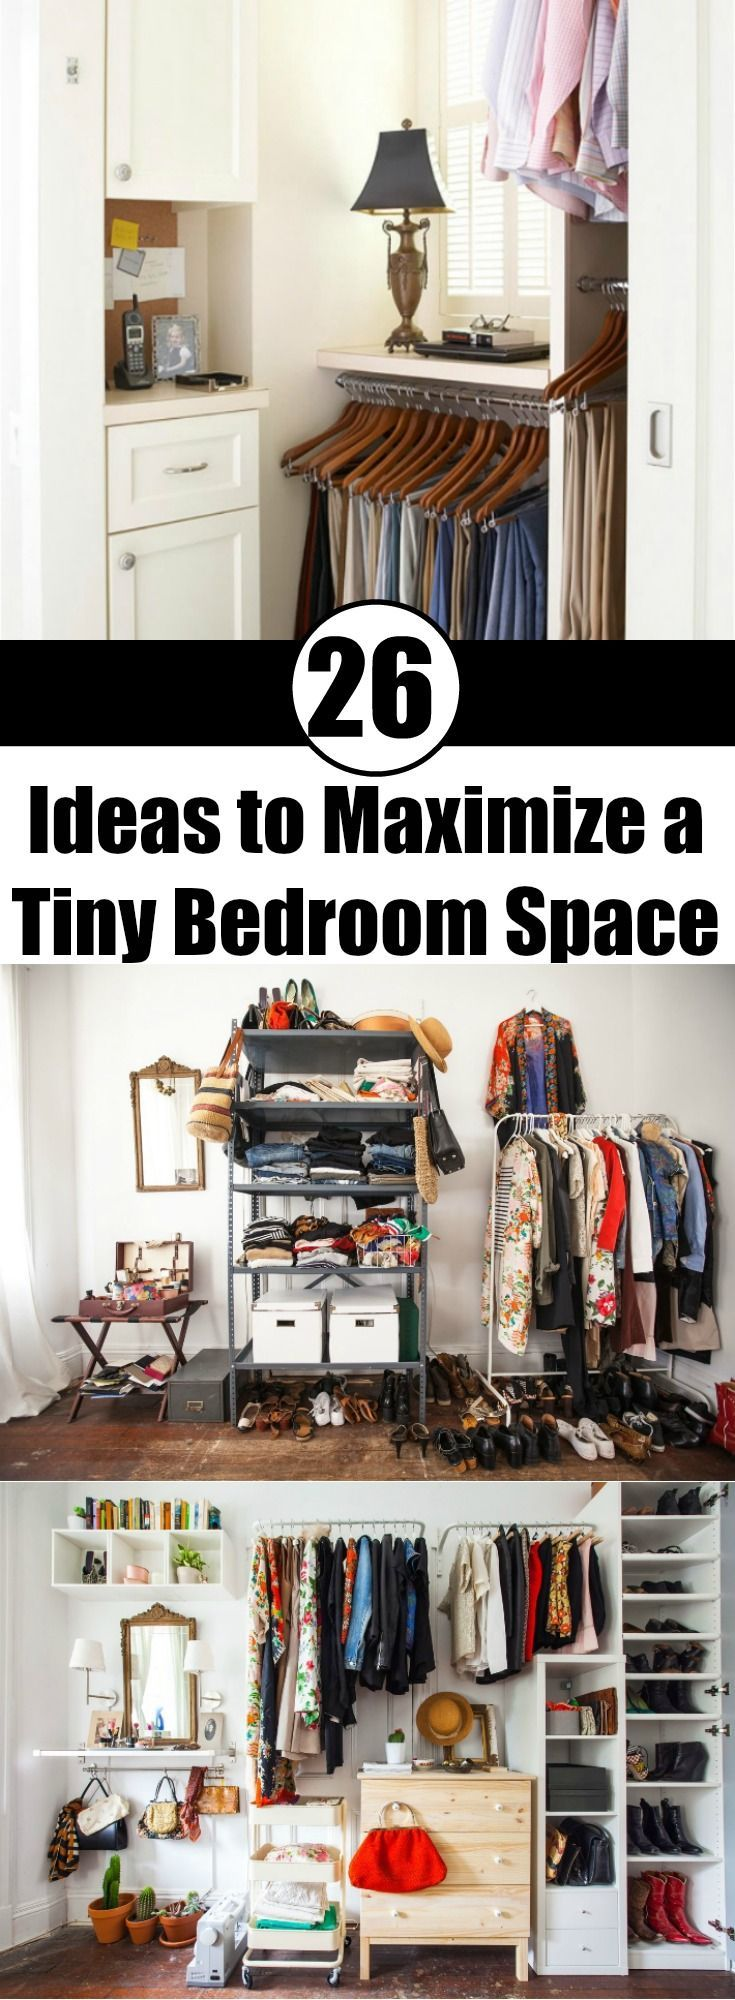 small bedroom space ideas 26 ideas to maximize a tiny bedroom space thrifty 17203